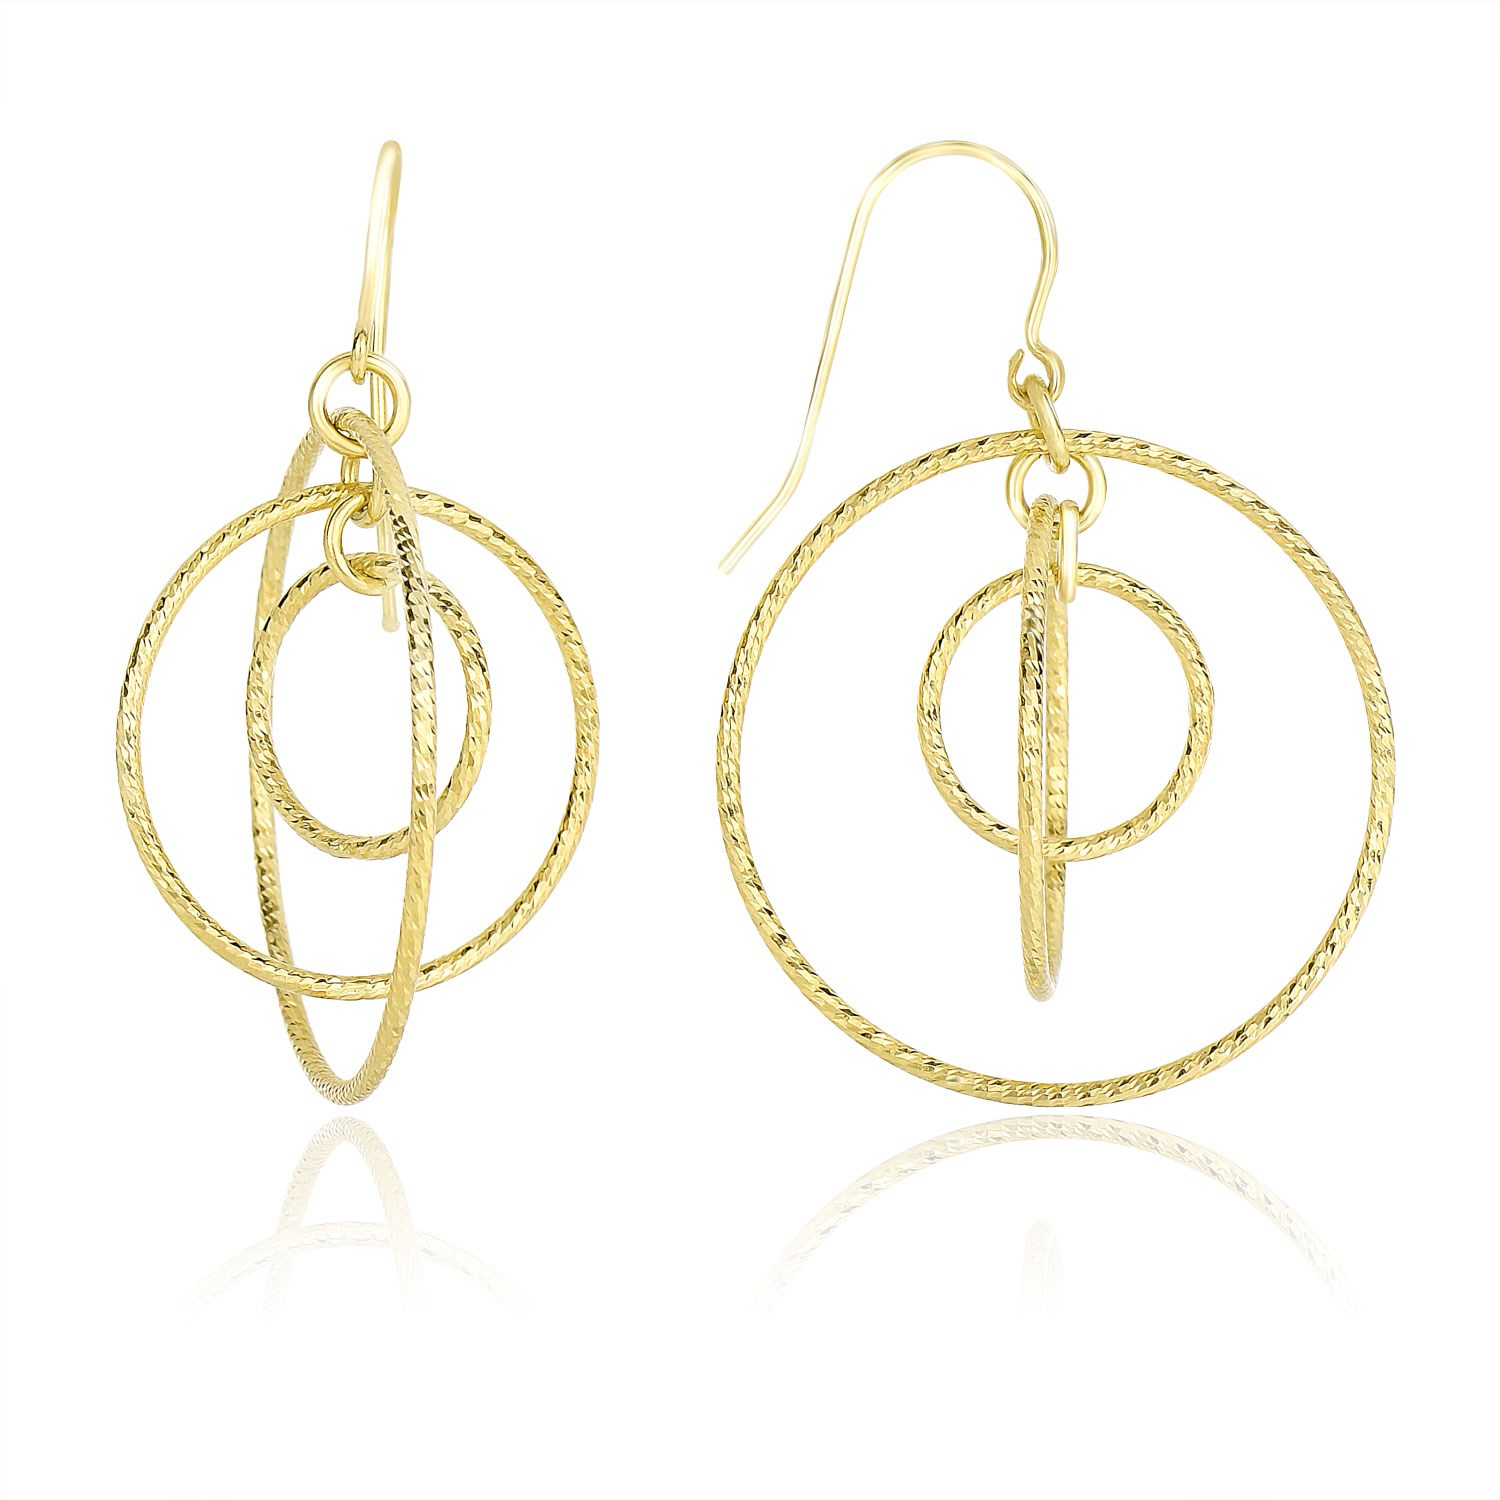 Concentric Circle Earrings: Diamond Cut Concentric Circle Style Drop Earrings In 14K